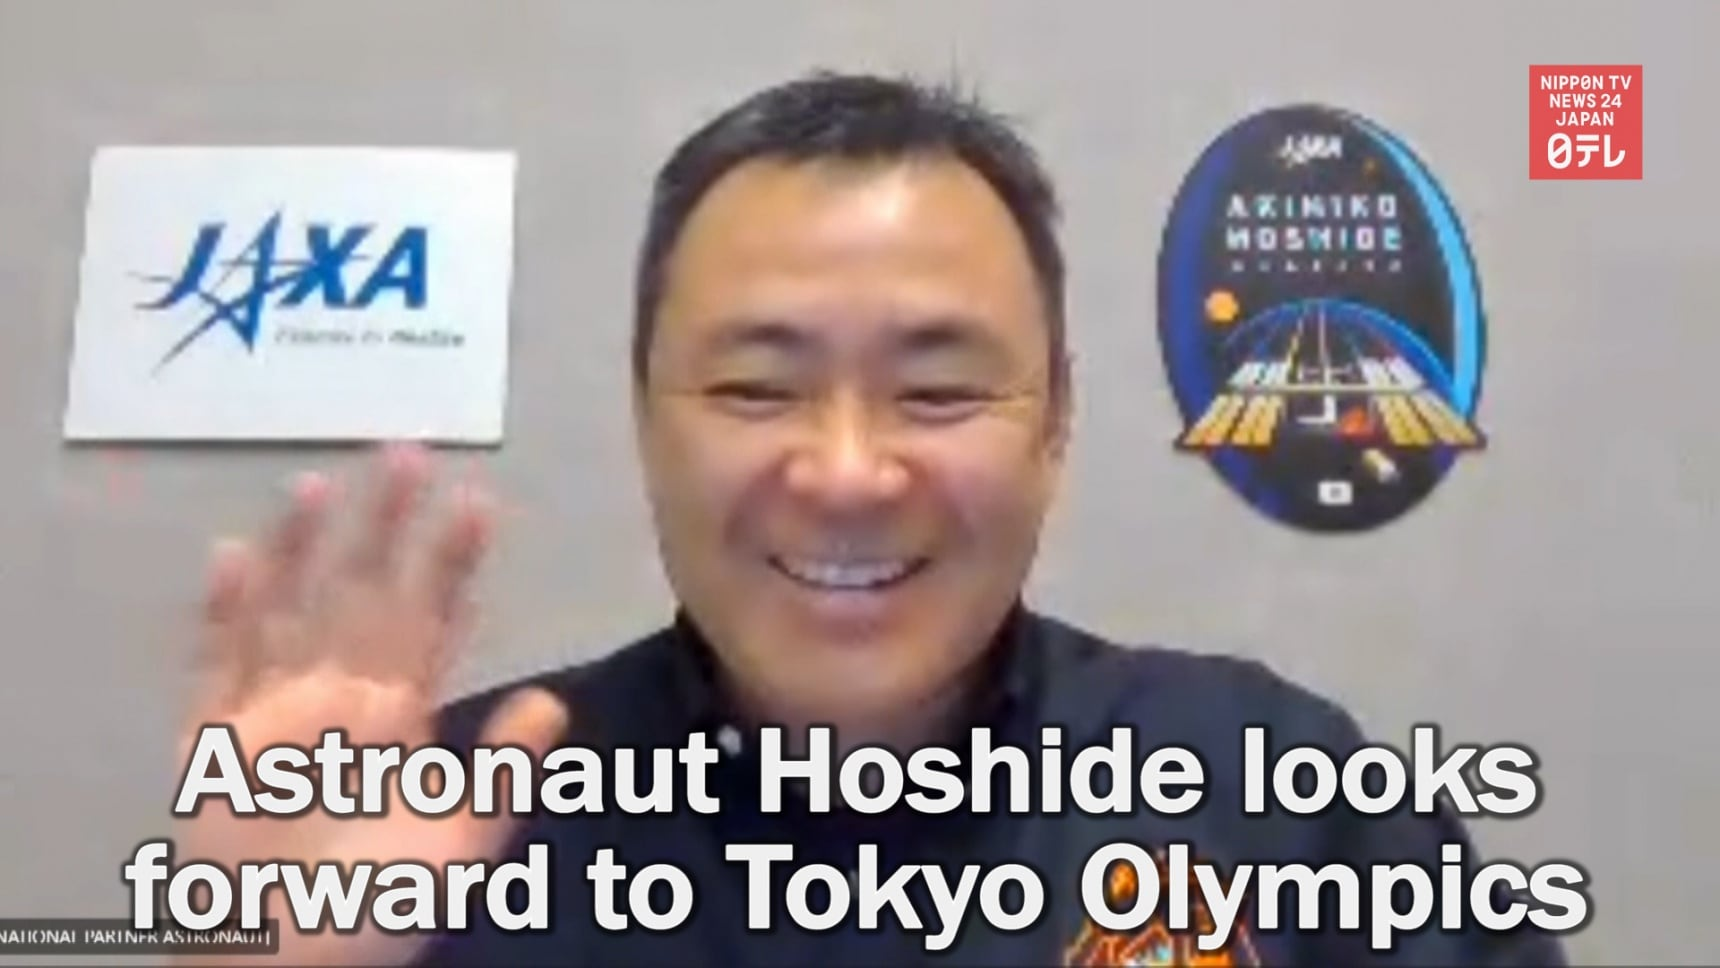 Astronaut Hoshide Excited About Tokyo Olympics